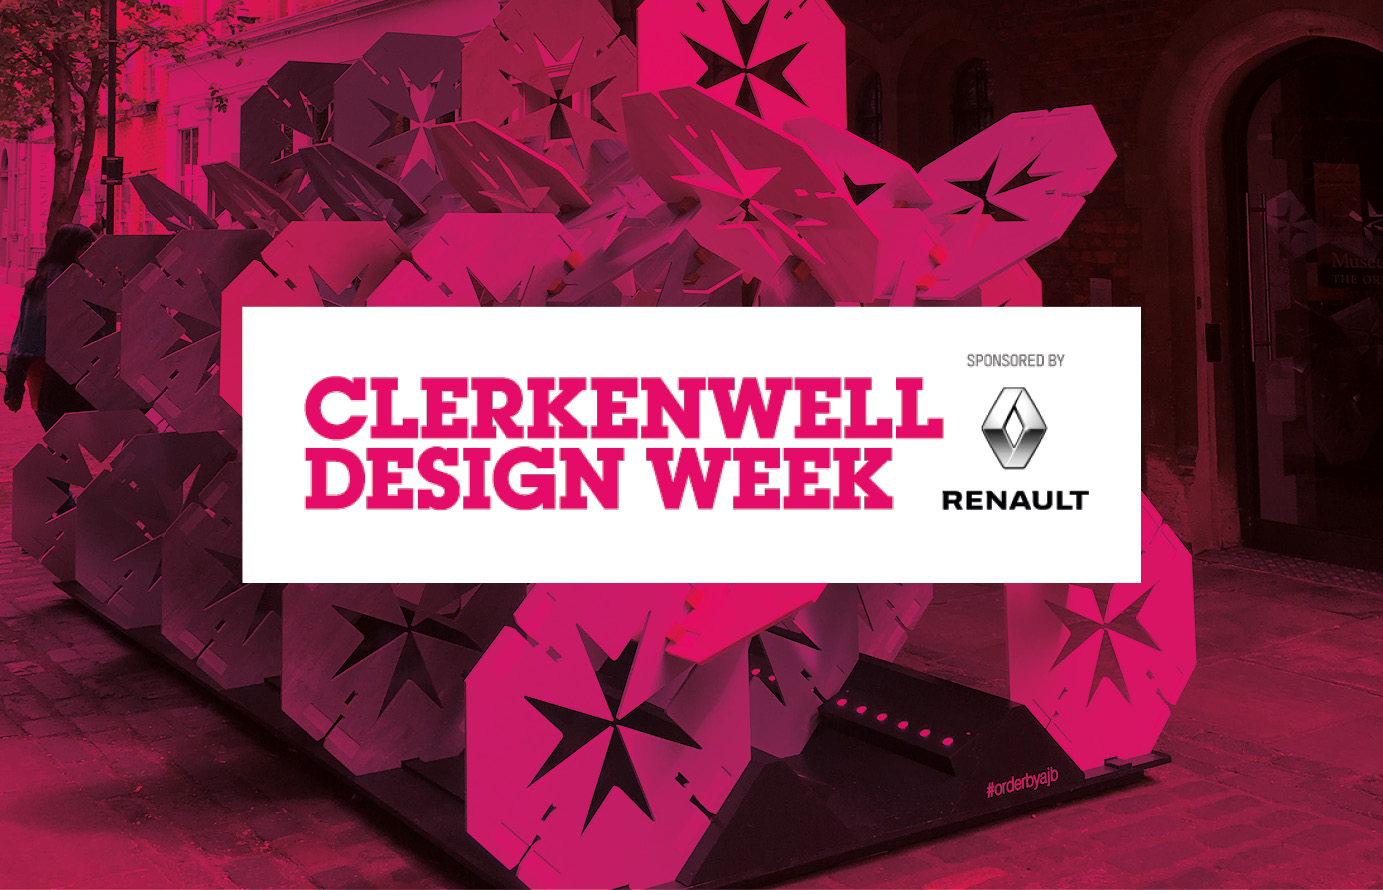 Workpace Design at Clerkenwell Design Week 2017